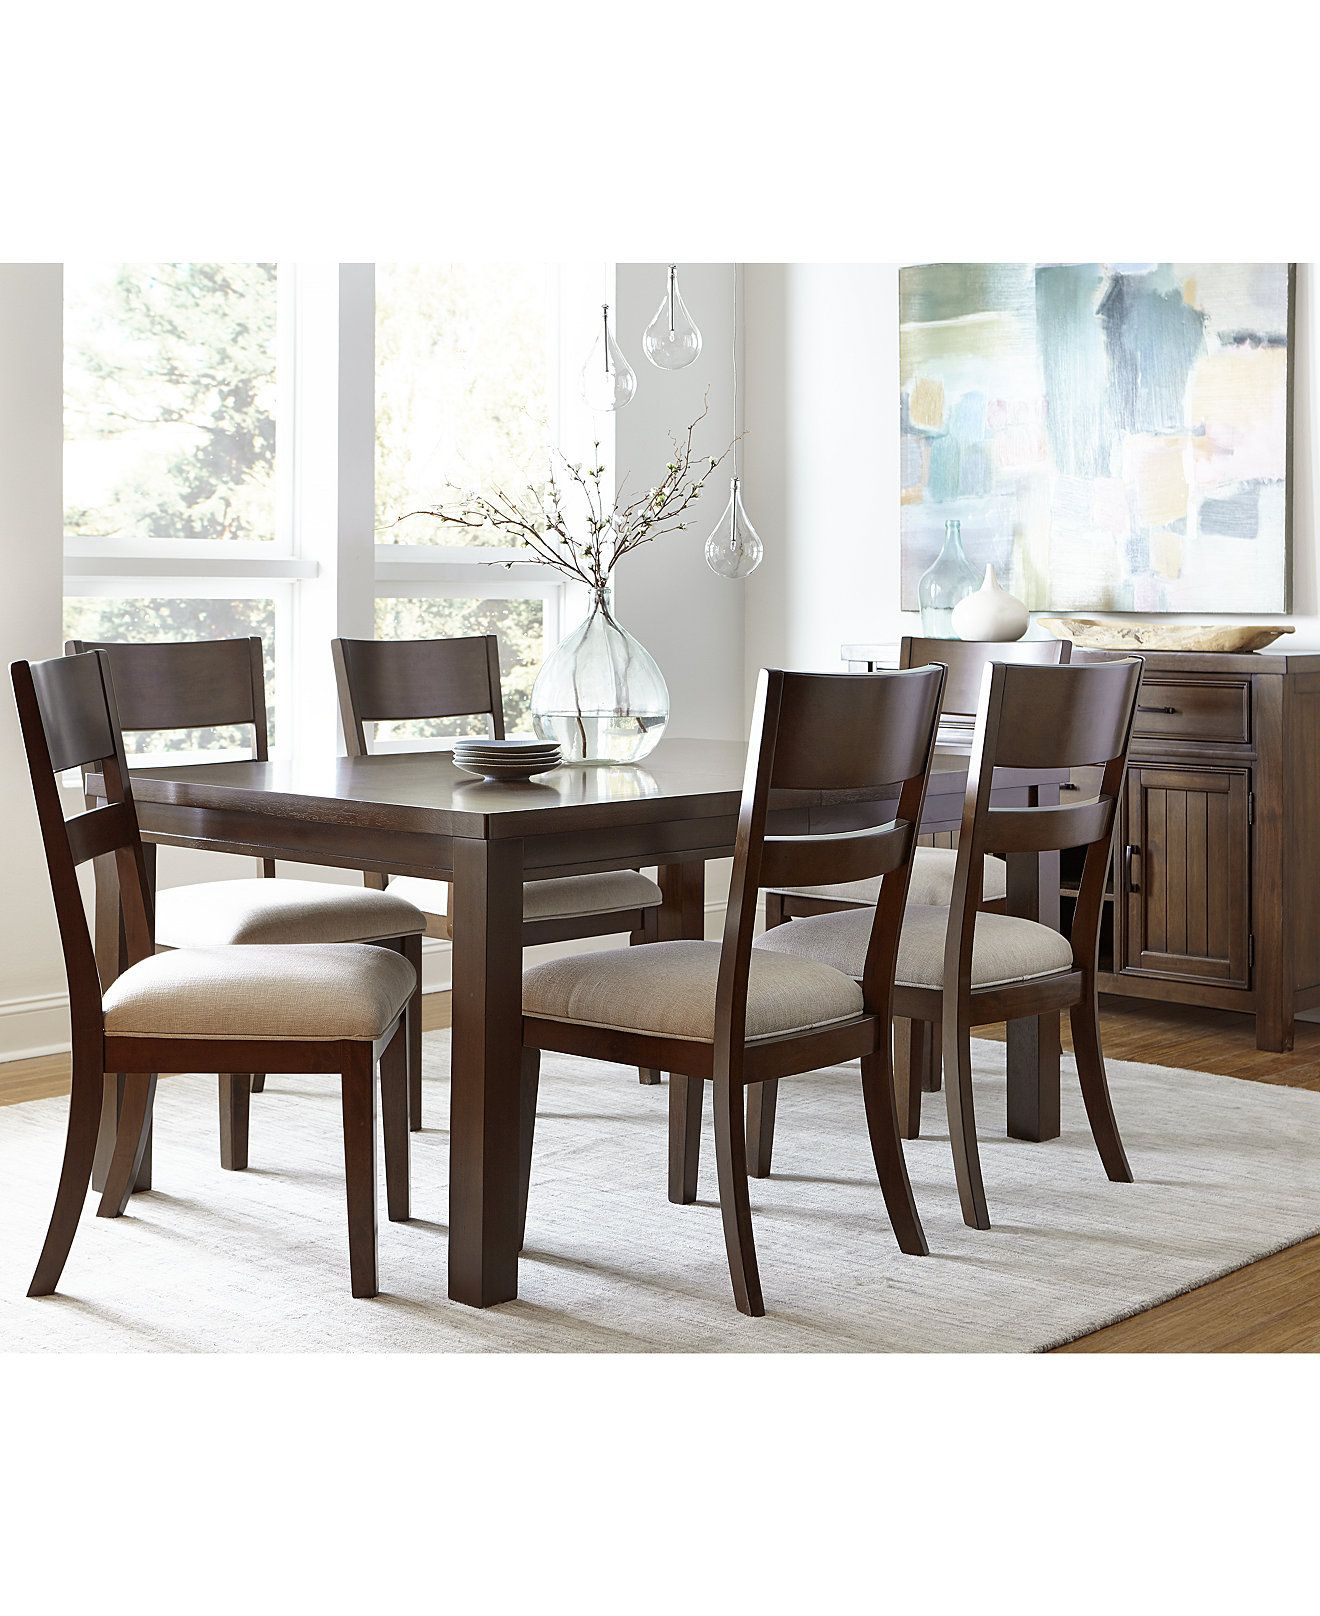 Chandler Dining Furniture Collection Dining Room Collections